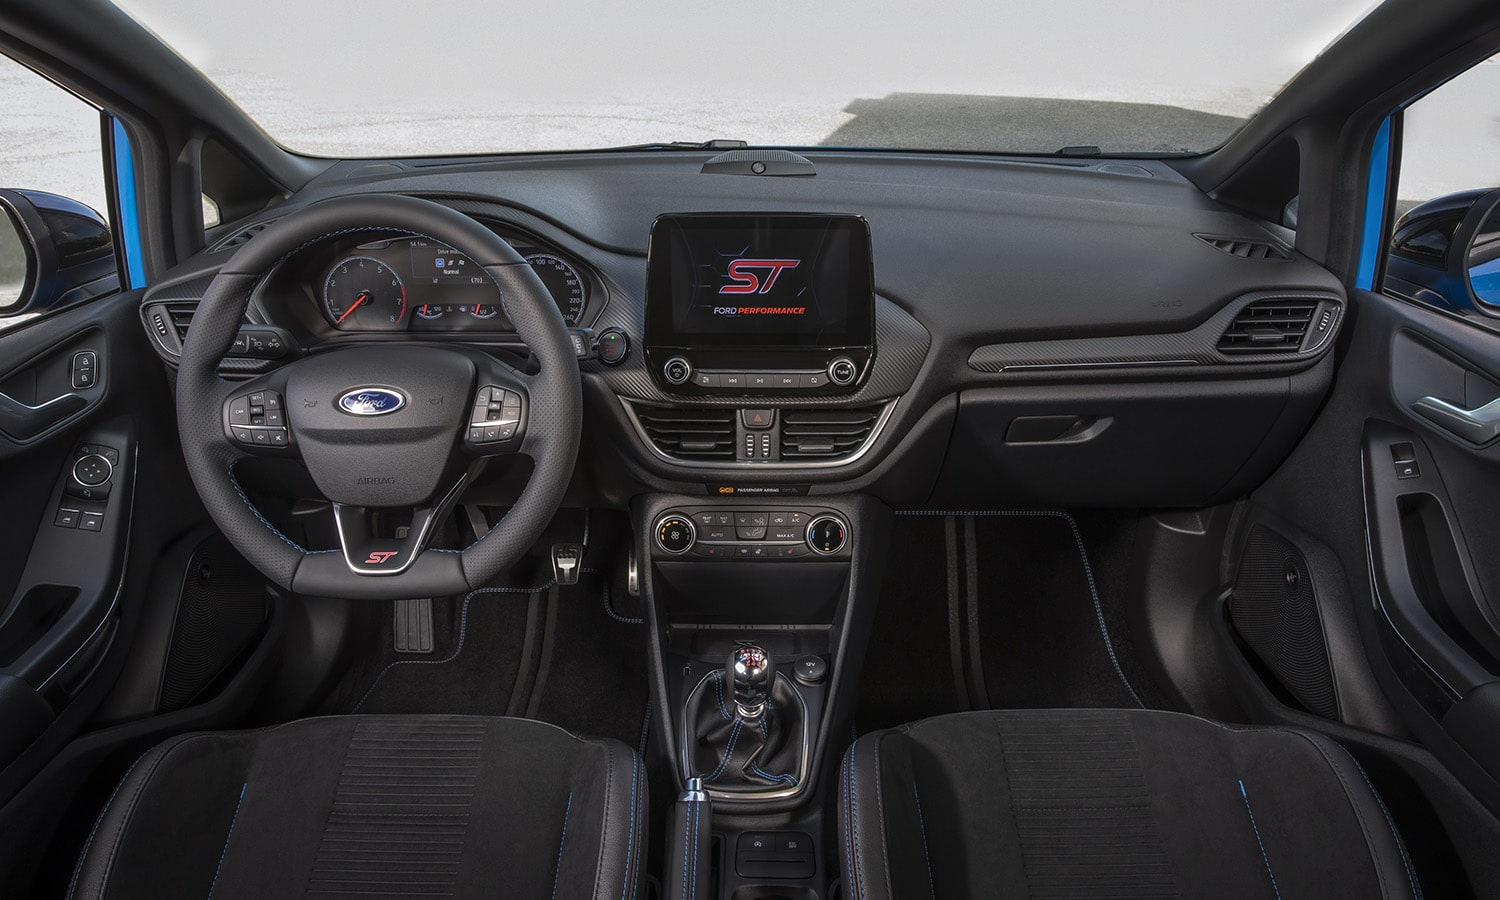 Ford Fiesta ST Edition interior